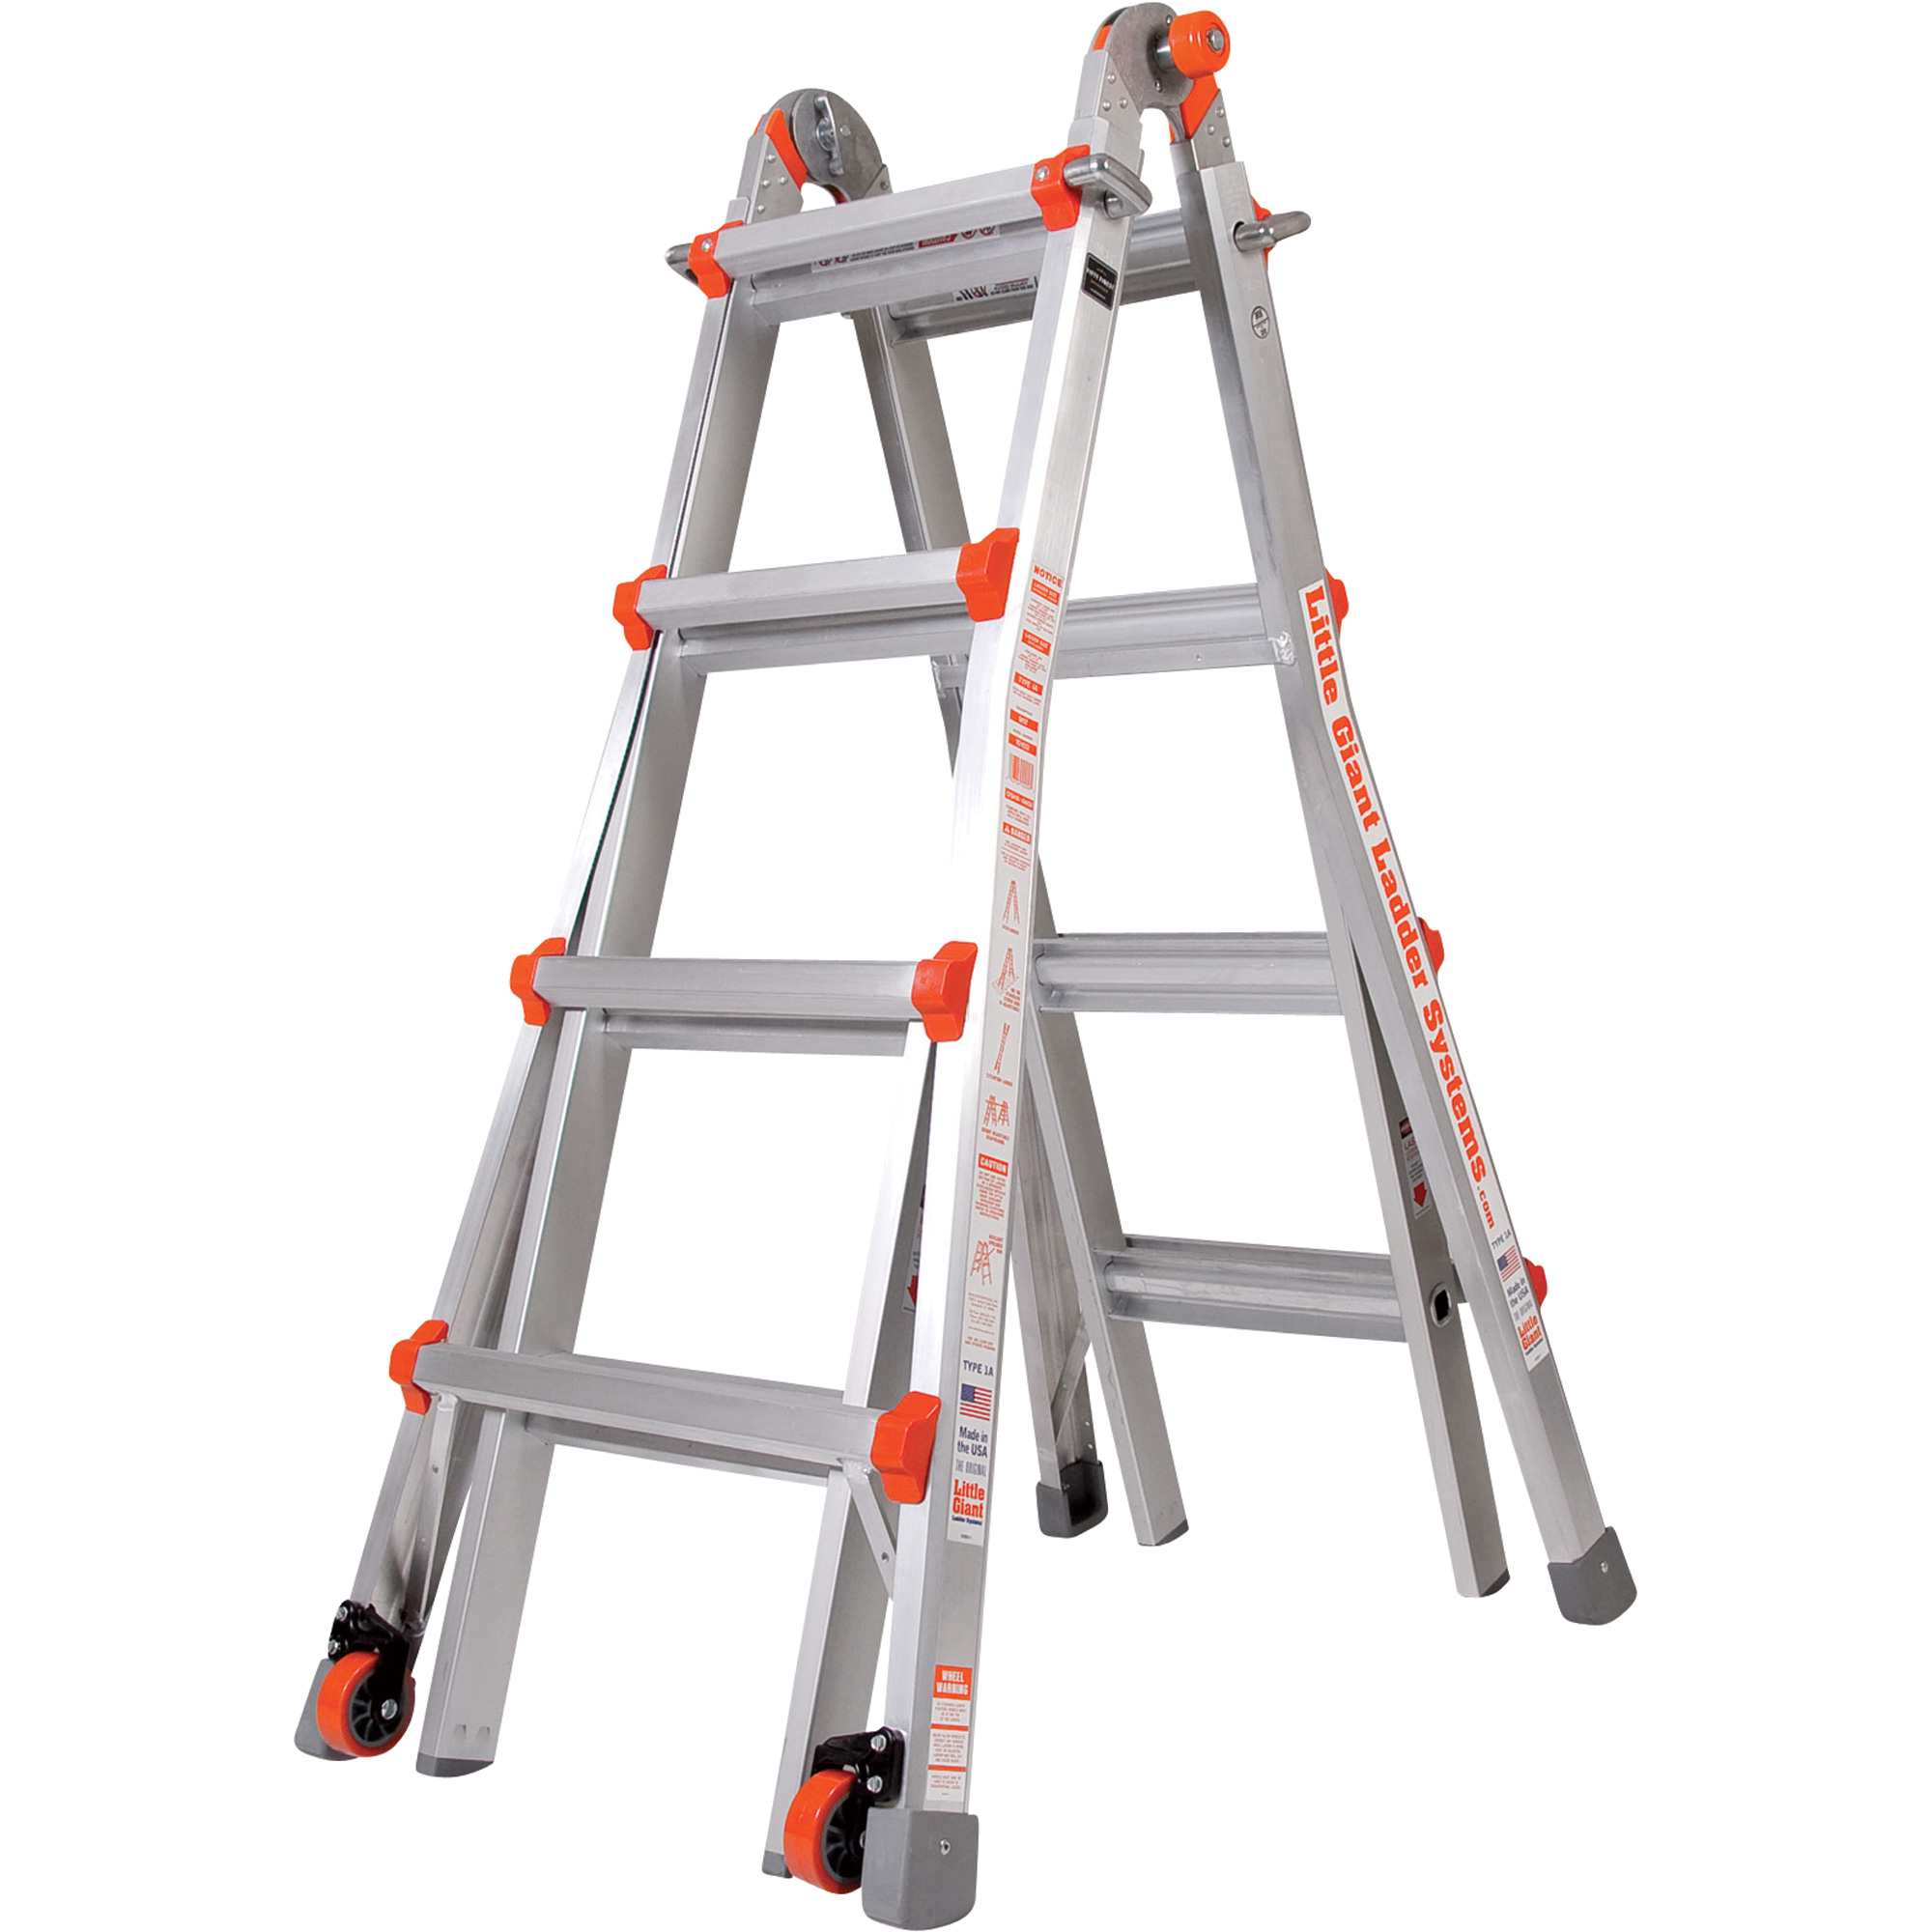 Have the right ladder for the job every time with the Velocity multi-use ladder from Little Giant. This professional-grade ladder system features a convertible design that allows it to be used in up to 24 unique configurations (Model 17).